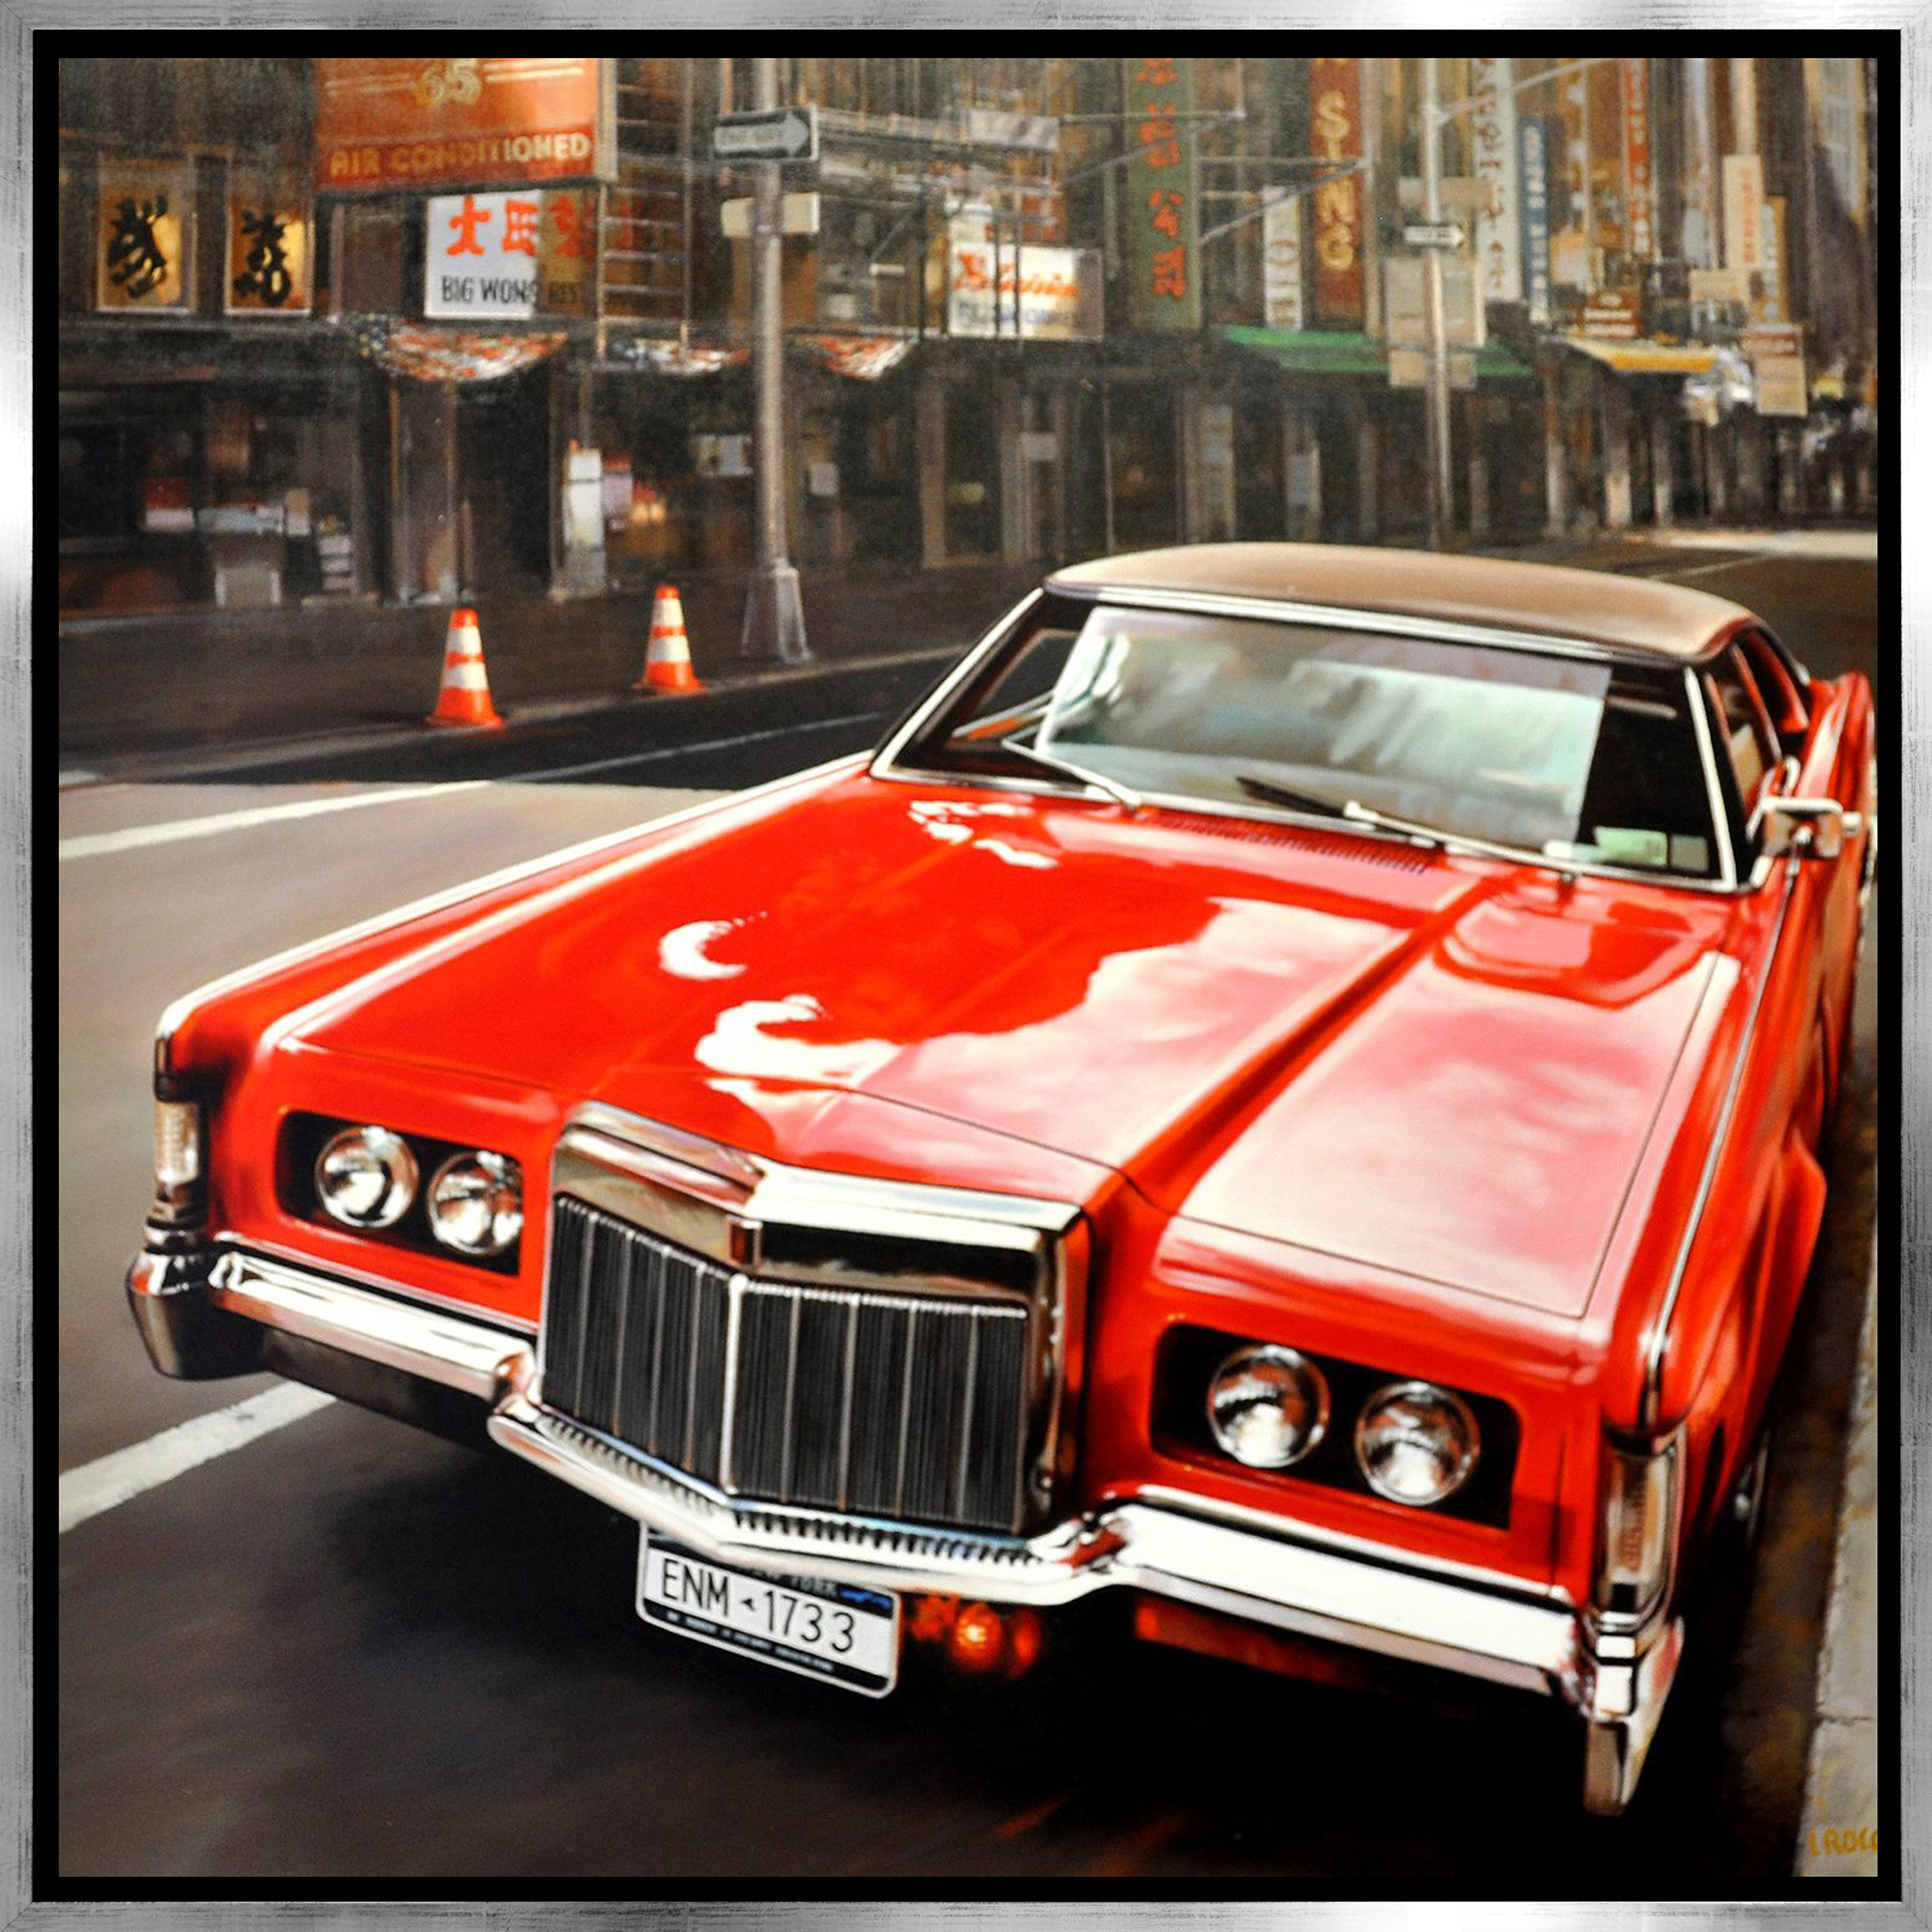 Luigi Rocca - 1733, parked red Cadillac , 0855-006-832